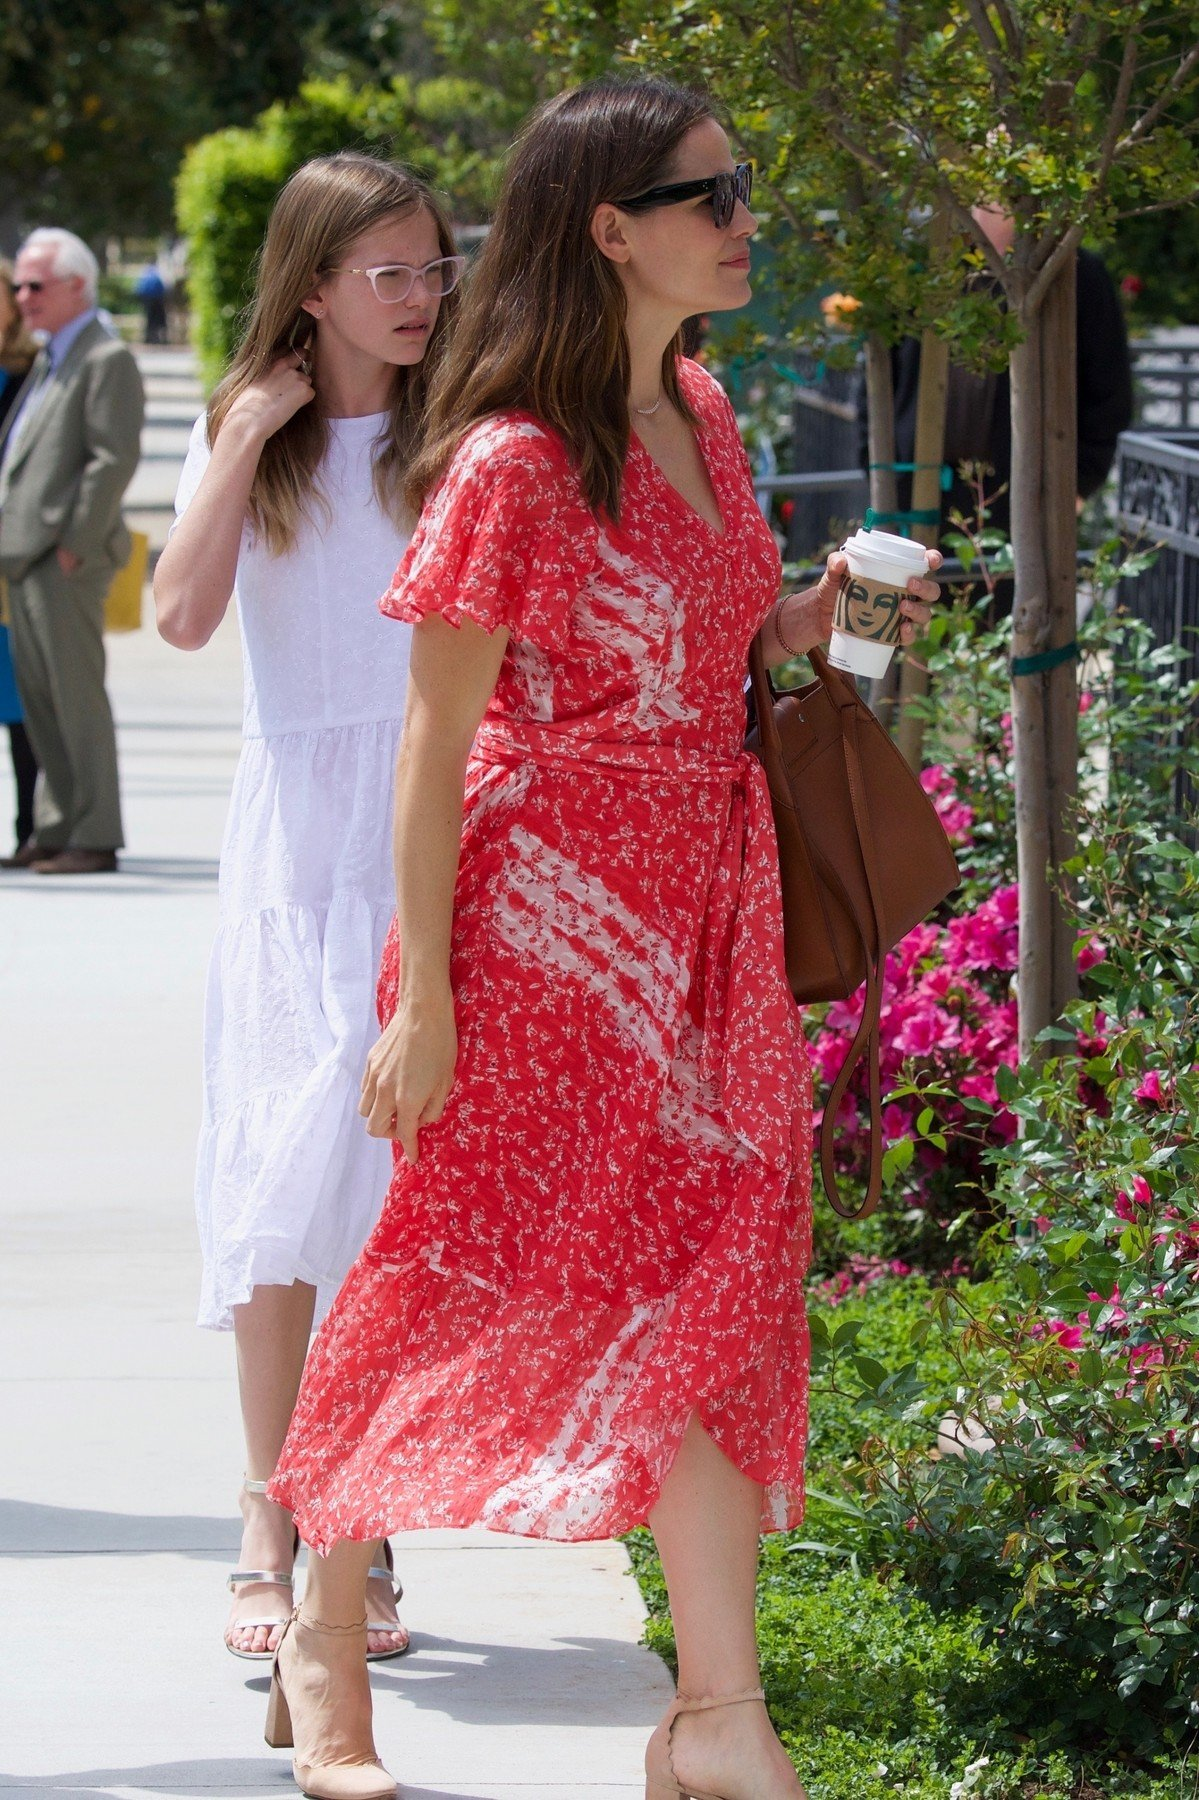 Los Angeles, CA  - Ben Affleck and Jennifer Garner are seen at church with their kids on Easter. Everyone looks dressed up for the Easter Sunday service as they are seen outside the church.  Pictured: Jennifer Garner , Ben Affleck  BACKGRID USA 21 APRIL 2019, Image: 427353143, License: Rights-managed, Restrictions: , Model Release: no, Credit line: Profimedia, Backgrid USA